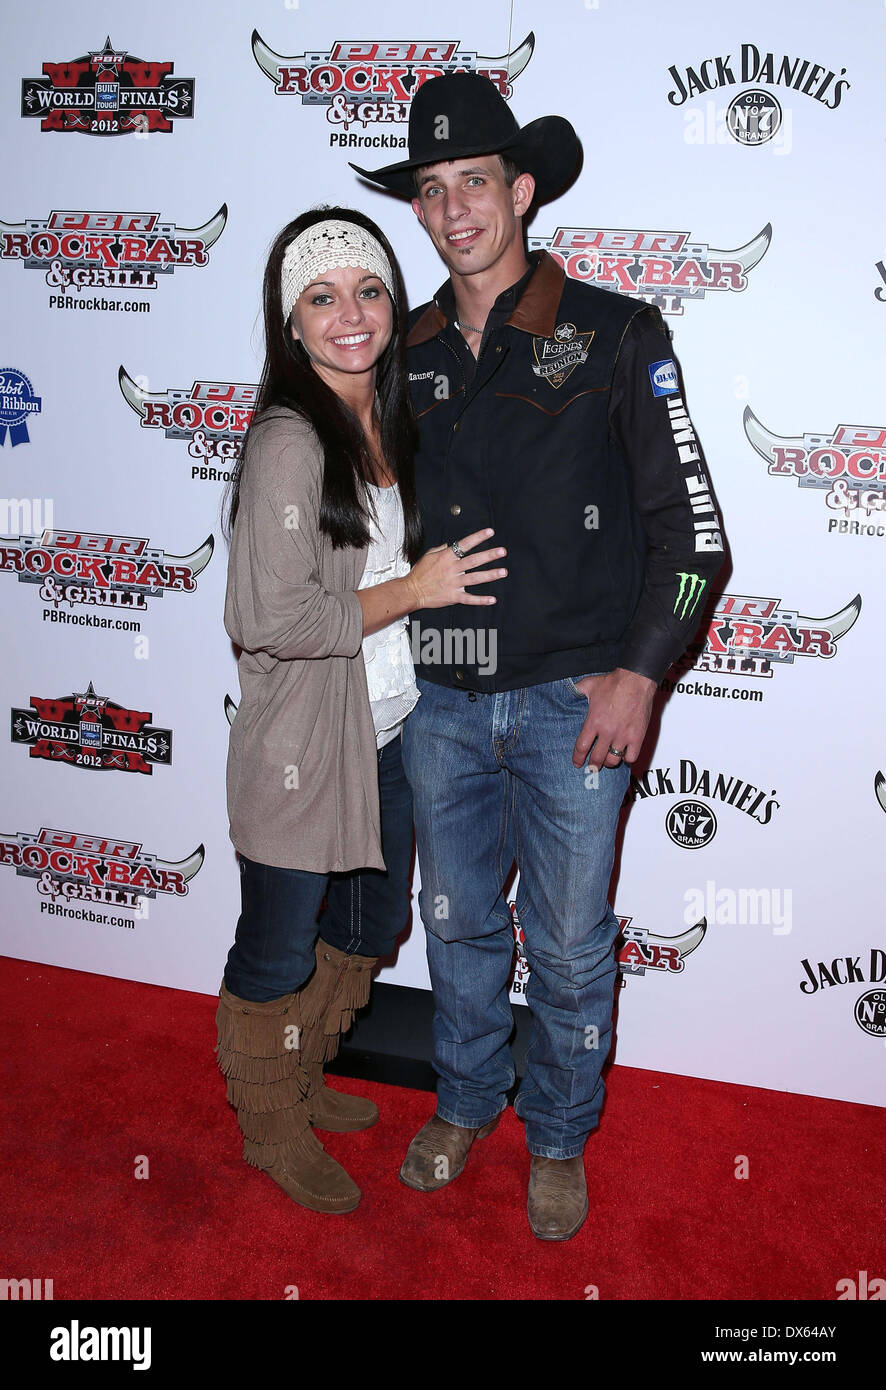 J B Mauney and Guest Professional Bull Rider Superstars walk the red carpet at PBR Rock Bar inside The Miracle Mile Shops at Planet Hollywood Resort and Casino Las Vegas, Nevada - 26.10.12 Featuring: J B Mauney and Guest Where: United States When: 26 Oct 2012 - Stock Image